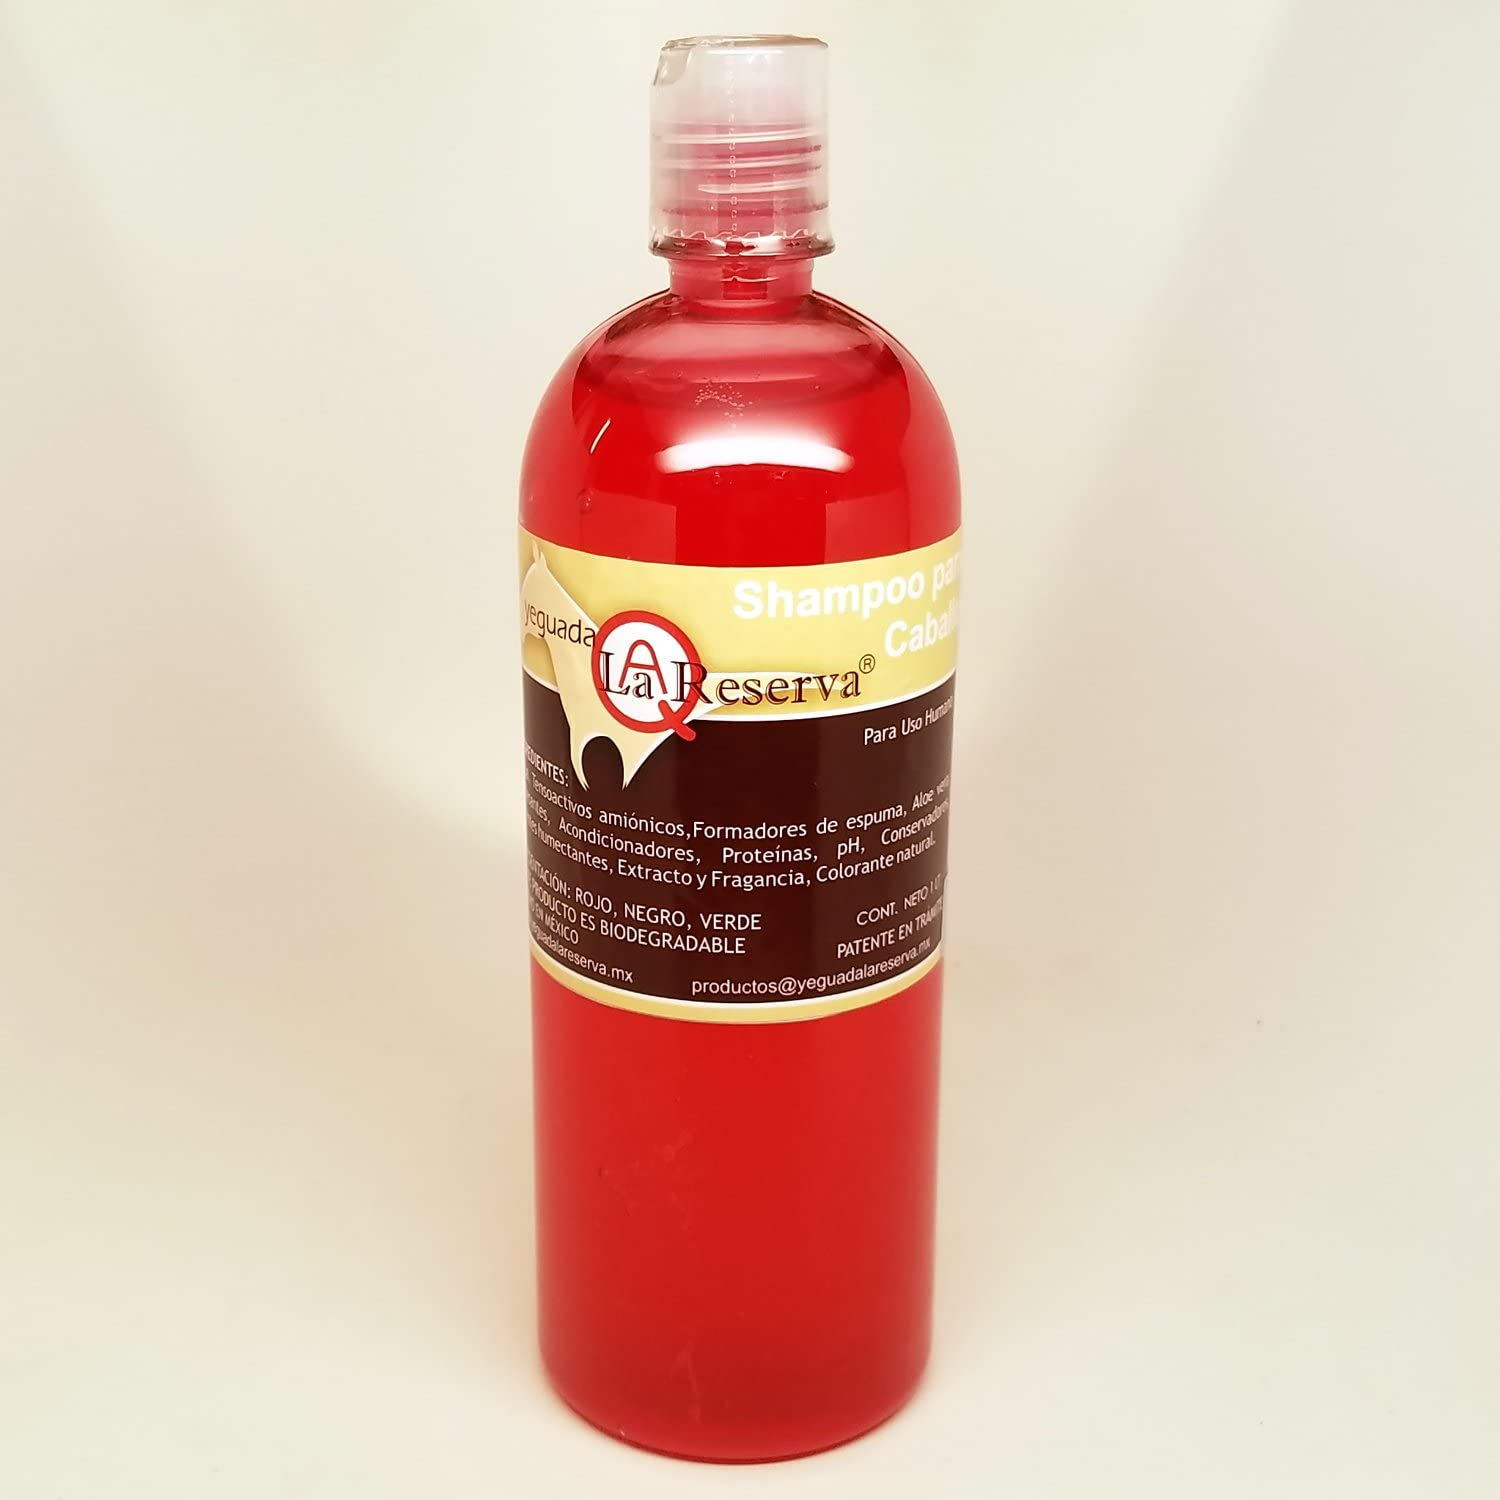 Yeguada La Reserva Shampoo de Caballo Rojo (1 liter Bottle) For Strong, Healthy And Beautiful Hair (For Light Colored Hair)